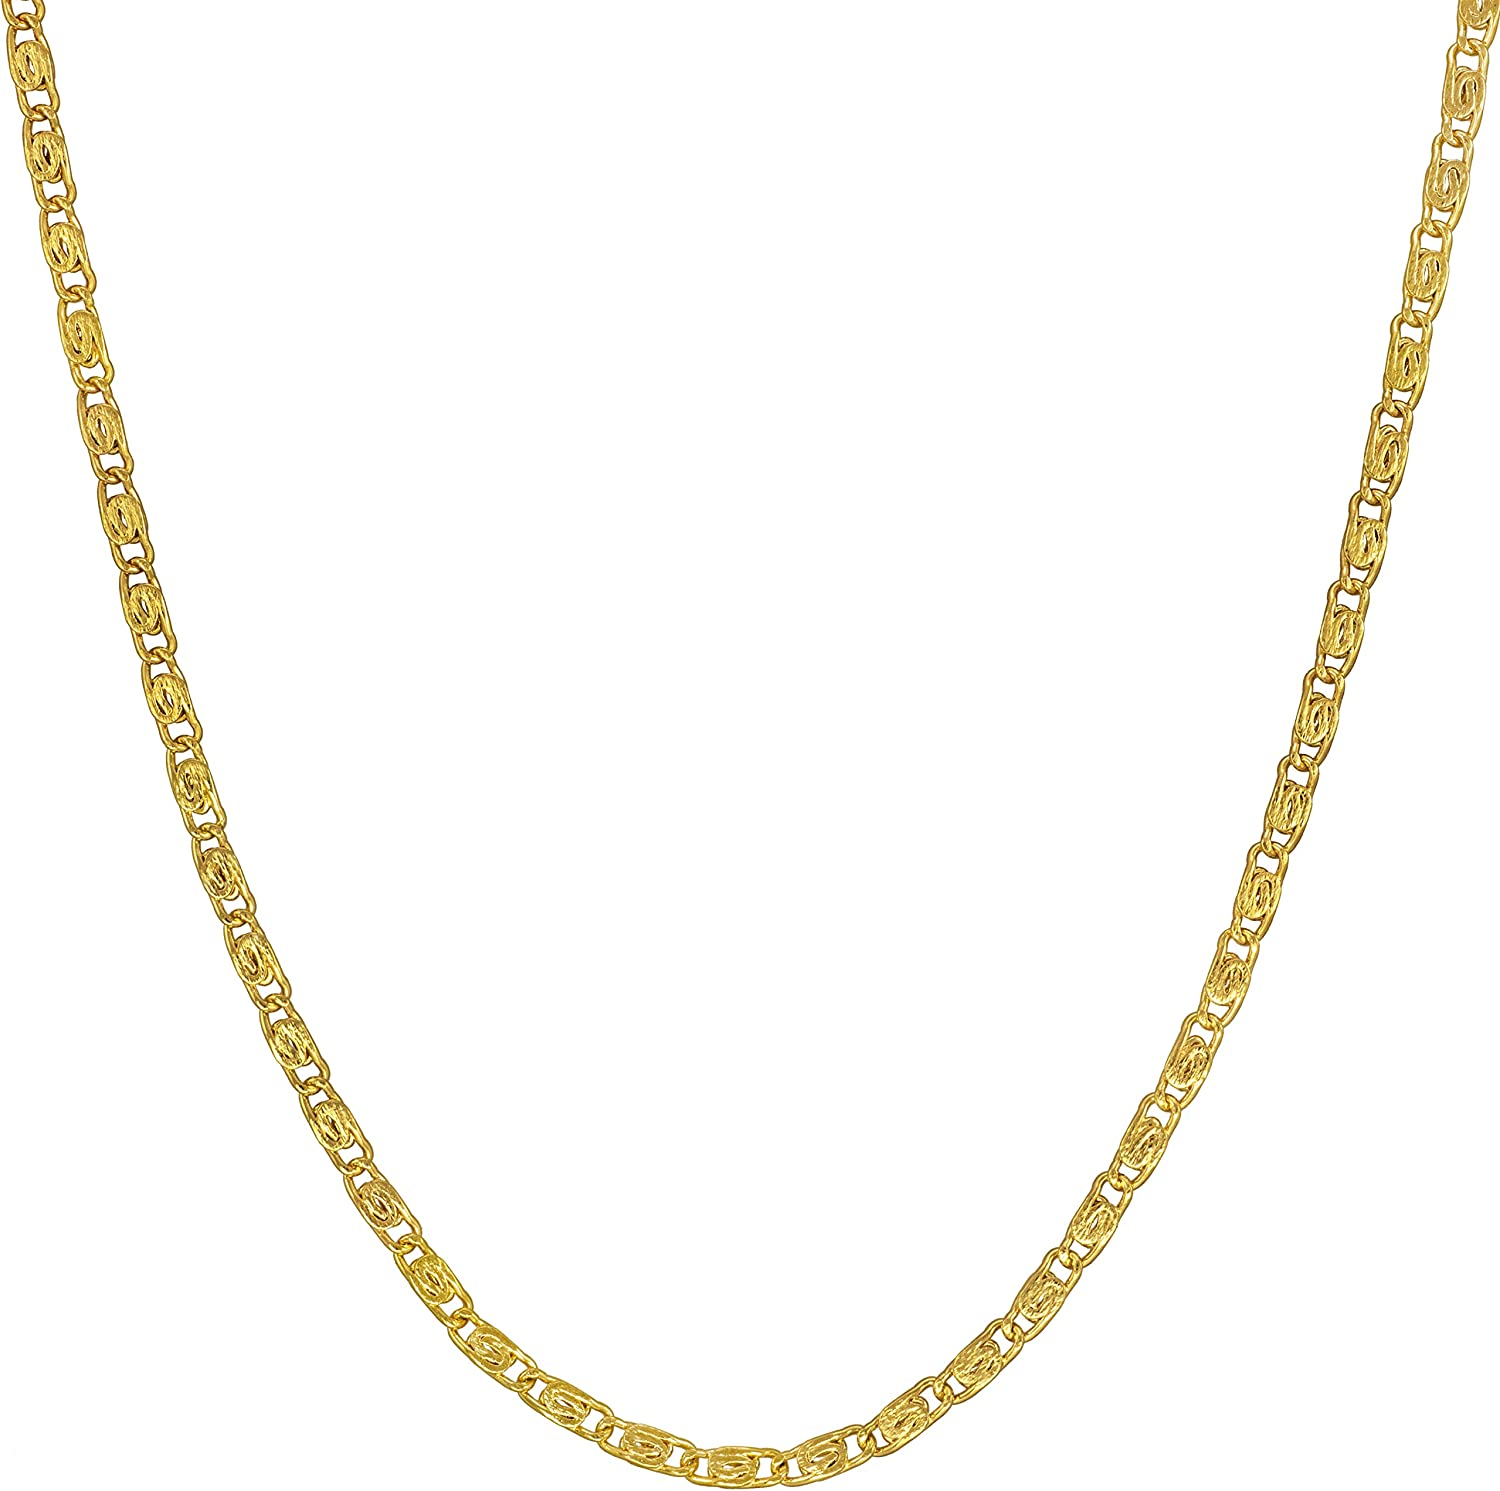 Lifetime Jewelry Gold Necklace for Women & Men [ 1.9mm Scroll Link Chain ] 20X More Real 24k Plating Than Other Dainty Pendant Chains - Cute and Durable - Lifetime Replacement Guarantee 16-30 inches